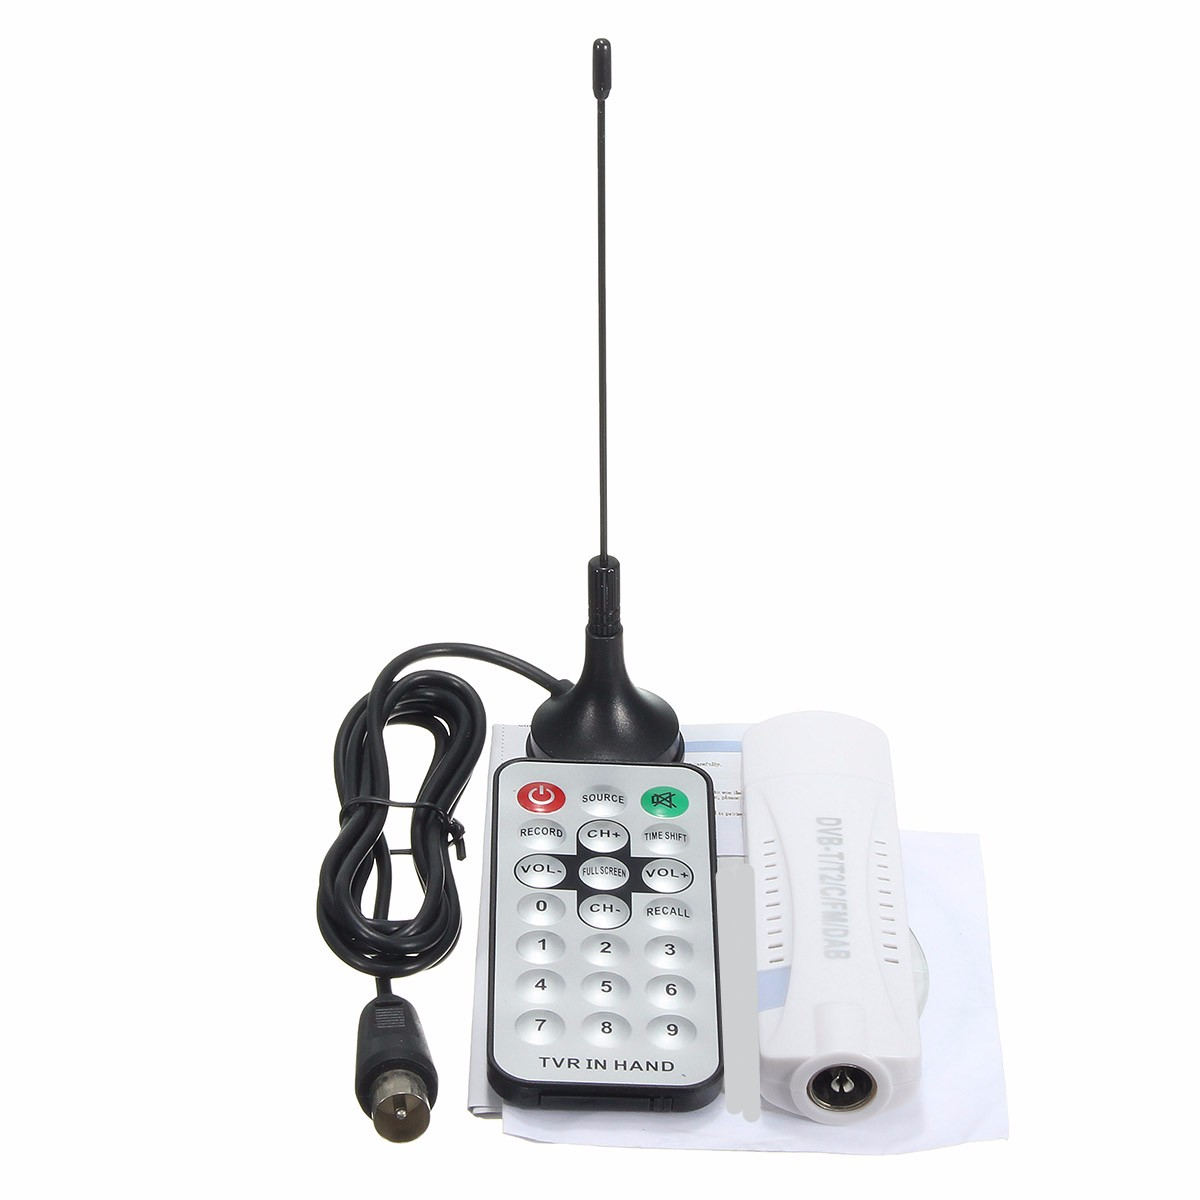 Digital DVB-T2/T DVB-C USB2.0 TV Tuner Stick HDTV Receiver with Antenna Remote Control HD USB Dongle PC/Laptop for Windows dvb t tv adapter cable mcx female jack to dvb t tuner antenna extension rg316